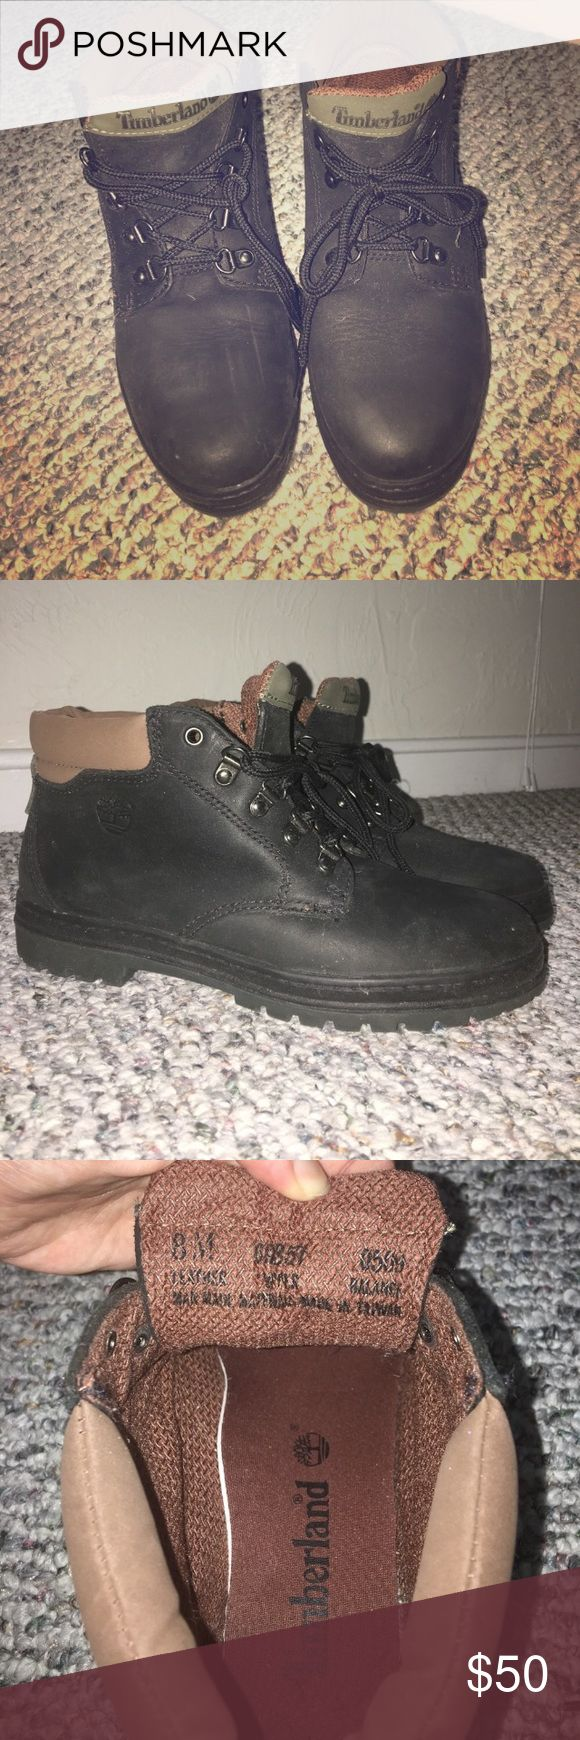 Timberland hiking boots Black Timberland hiking boots in size 8. Run a tad bit small, so would better fit a 7.5. Excellent condition Timberland Shoes Lace Up Boots